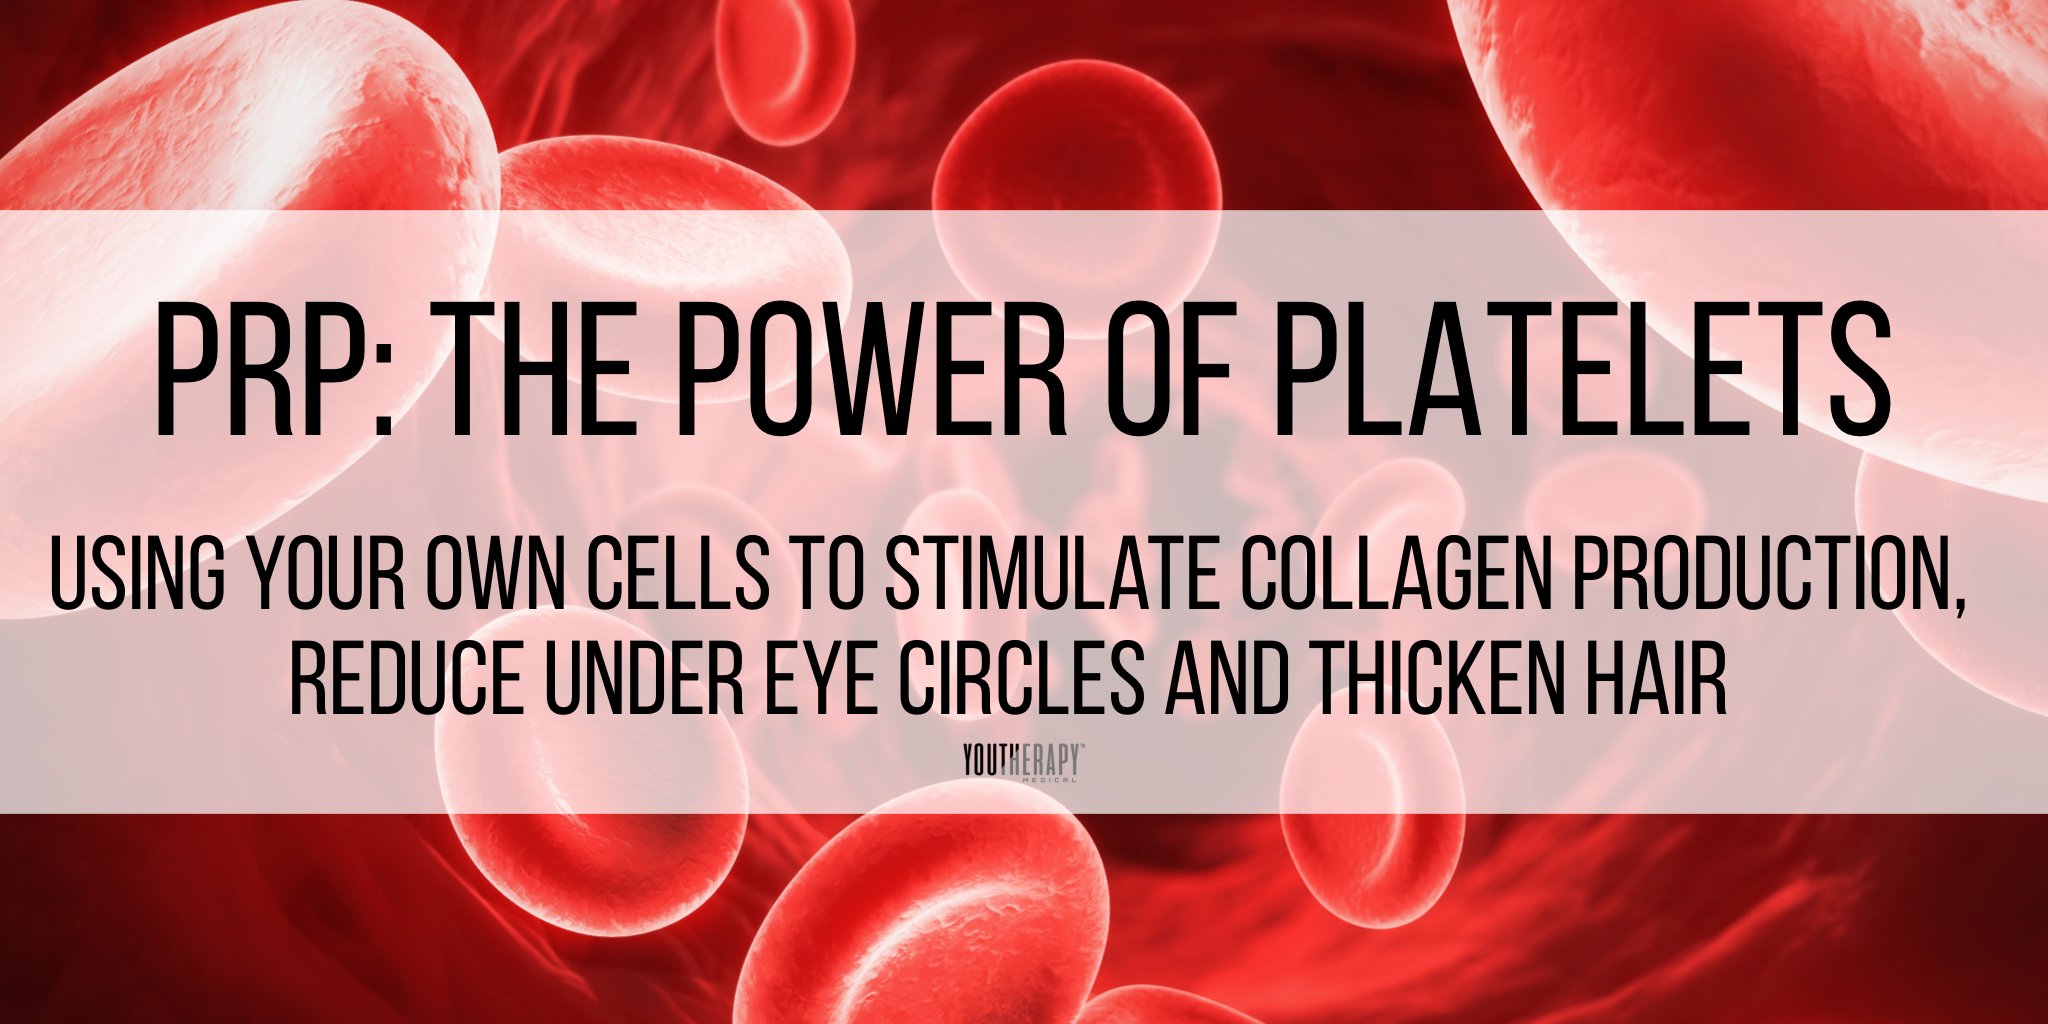 PRP: The Power of Platelets